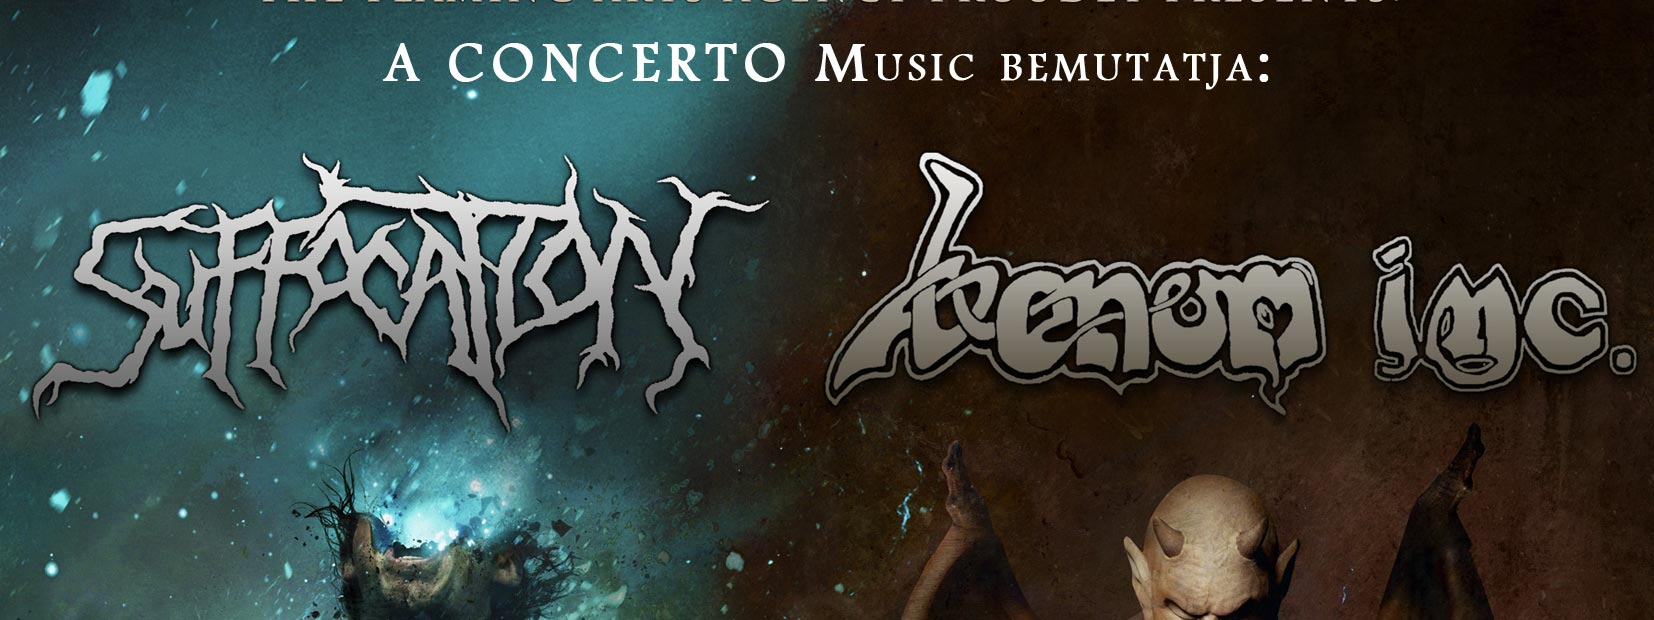 VENOM INC. I Suffocation I Nervosa I Aeternam